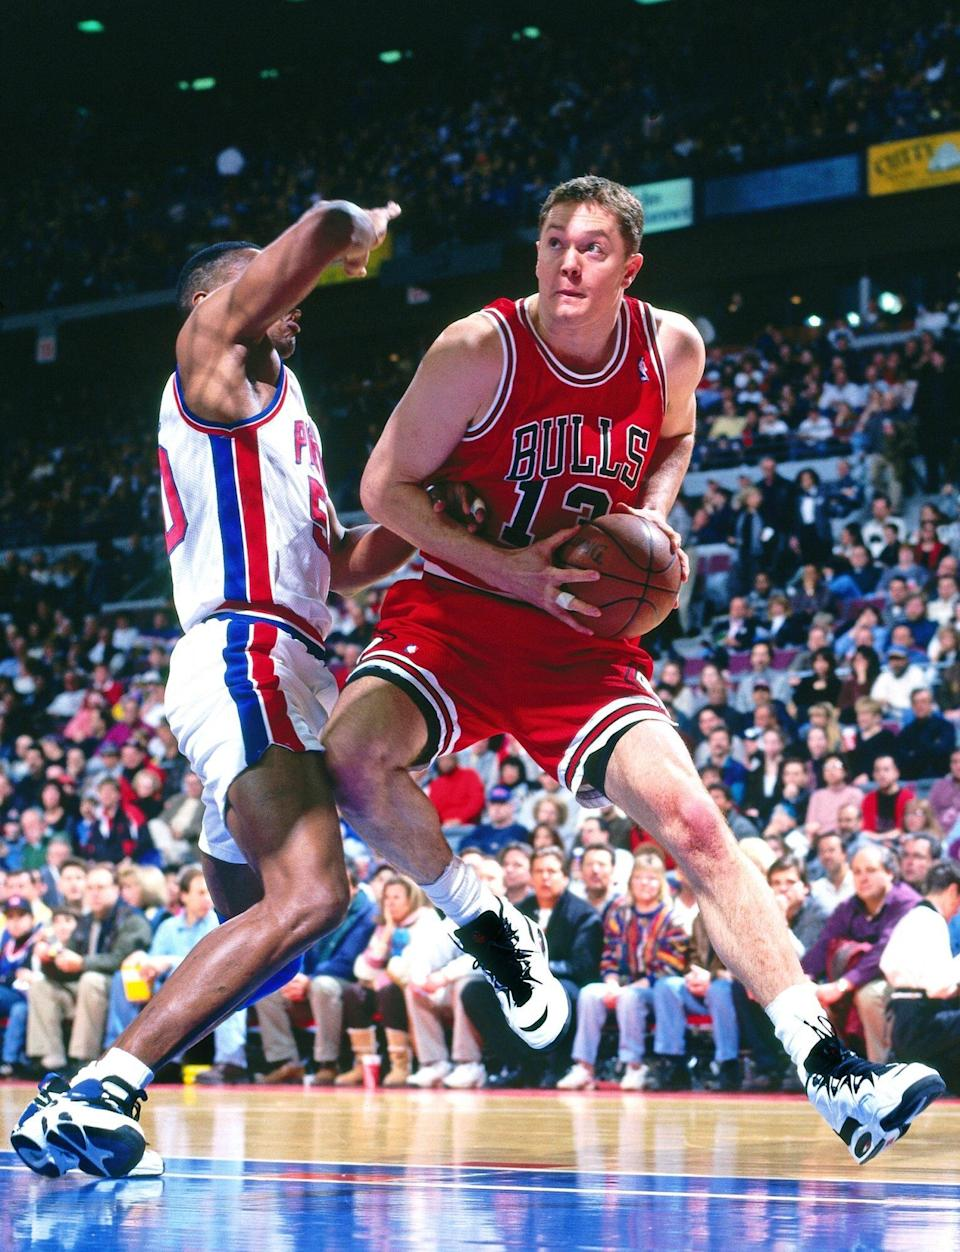 Luc Longley #13 of the Chicago Bulls drives against the Detroit Pistons on January 21, 1996 at the Palace of Auburn Hills in Auburn Hills, Michigan